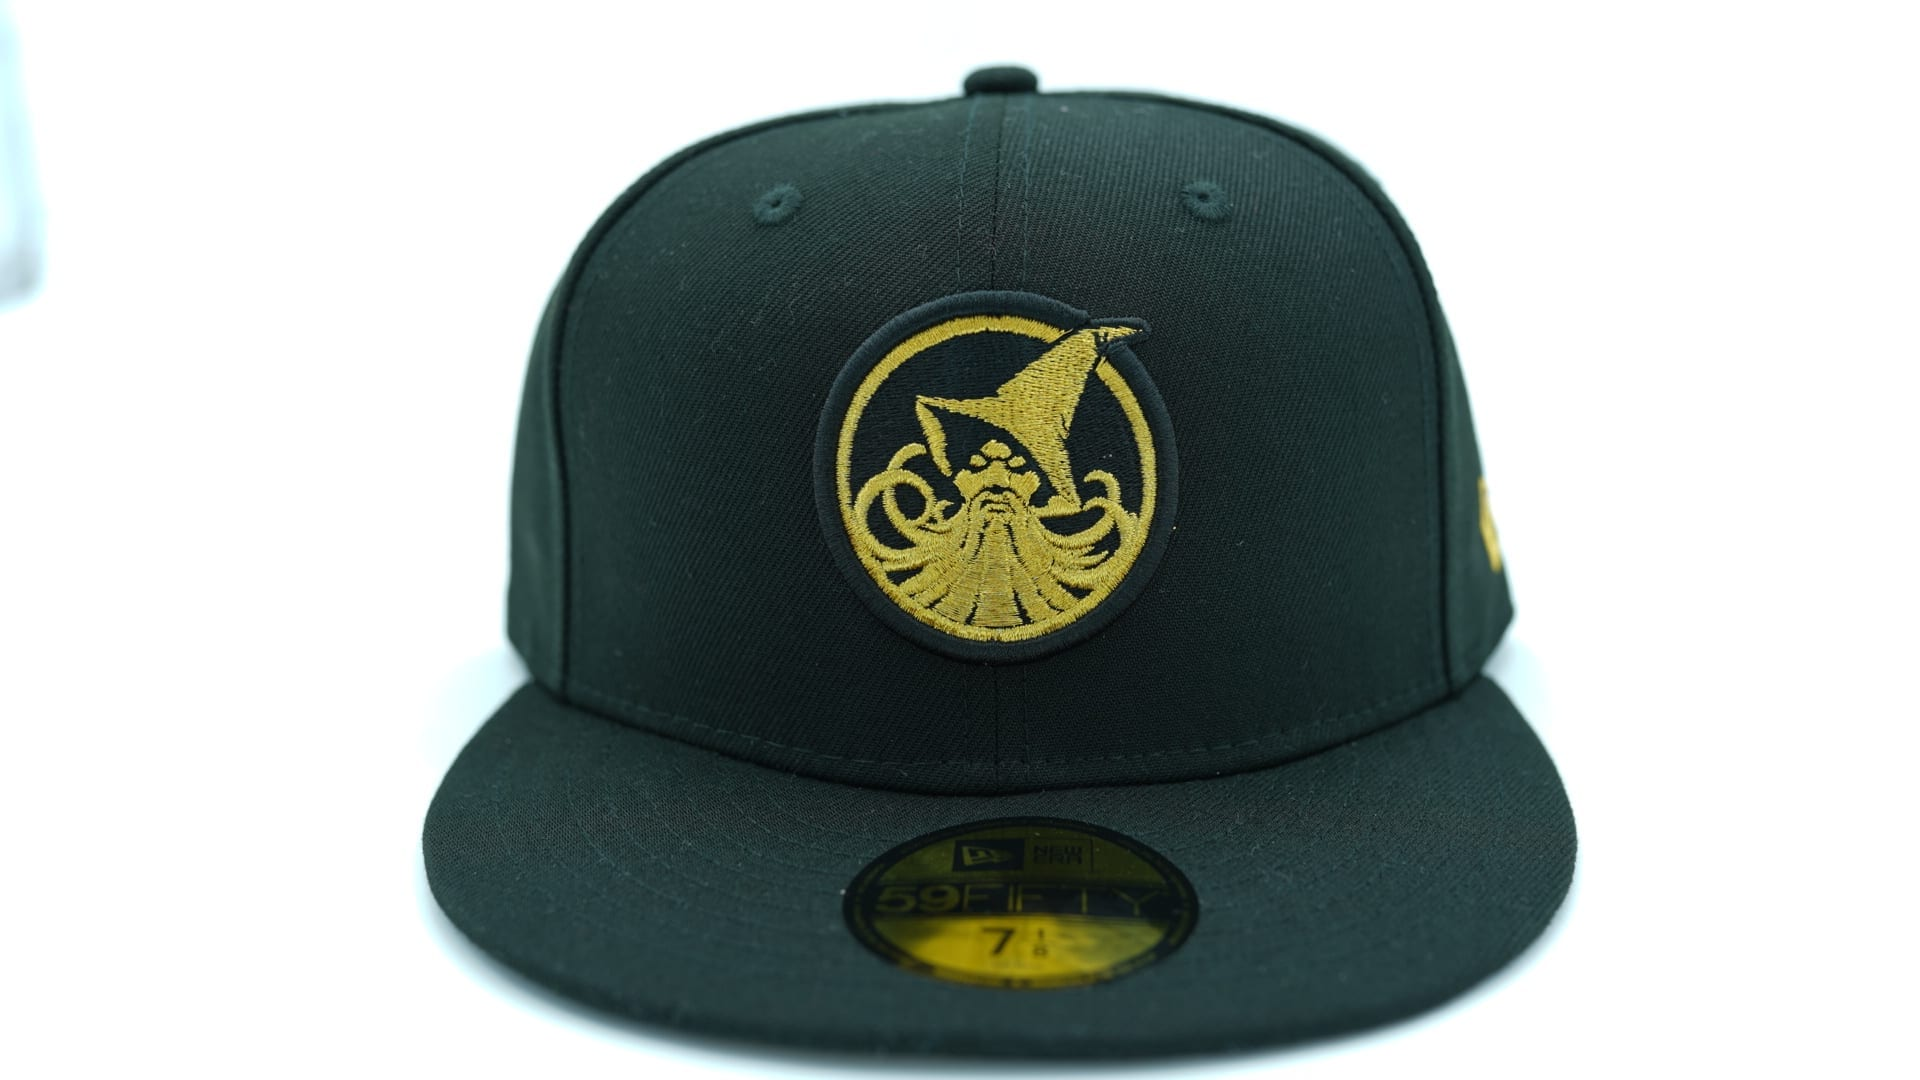 b861197d5ad forum-snowboards-new-era-59Fifty-fitted-baseball-cap-